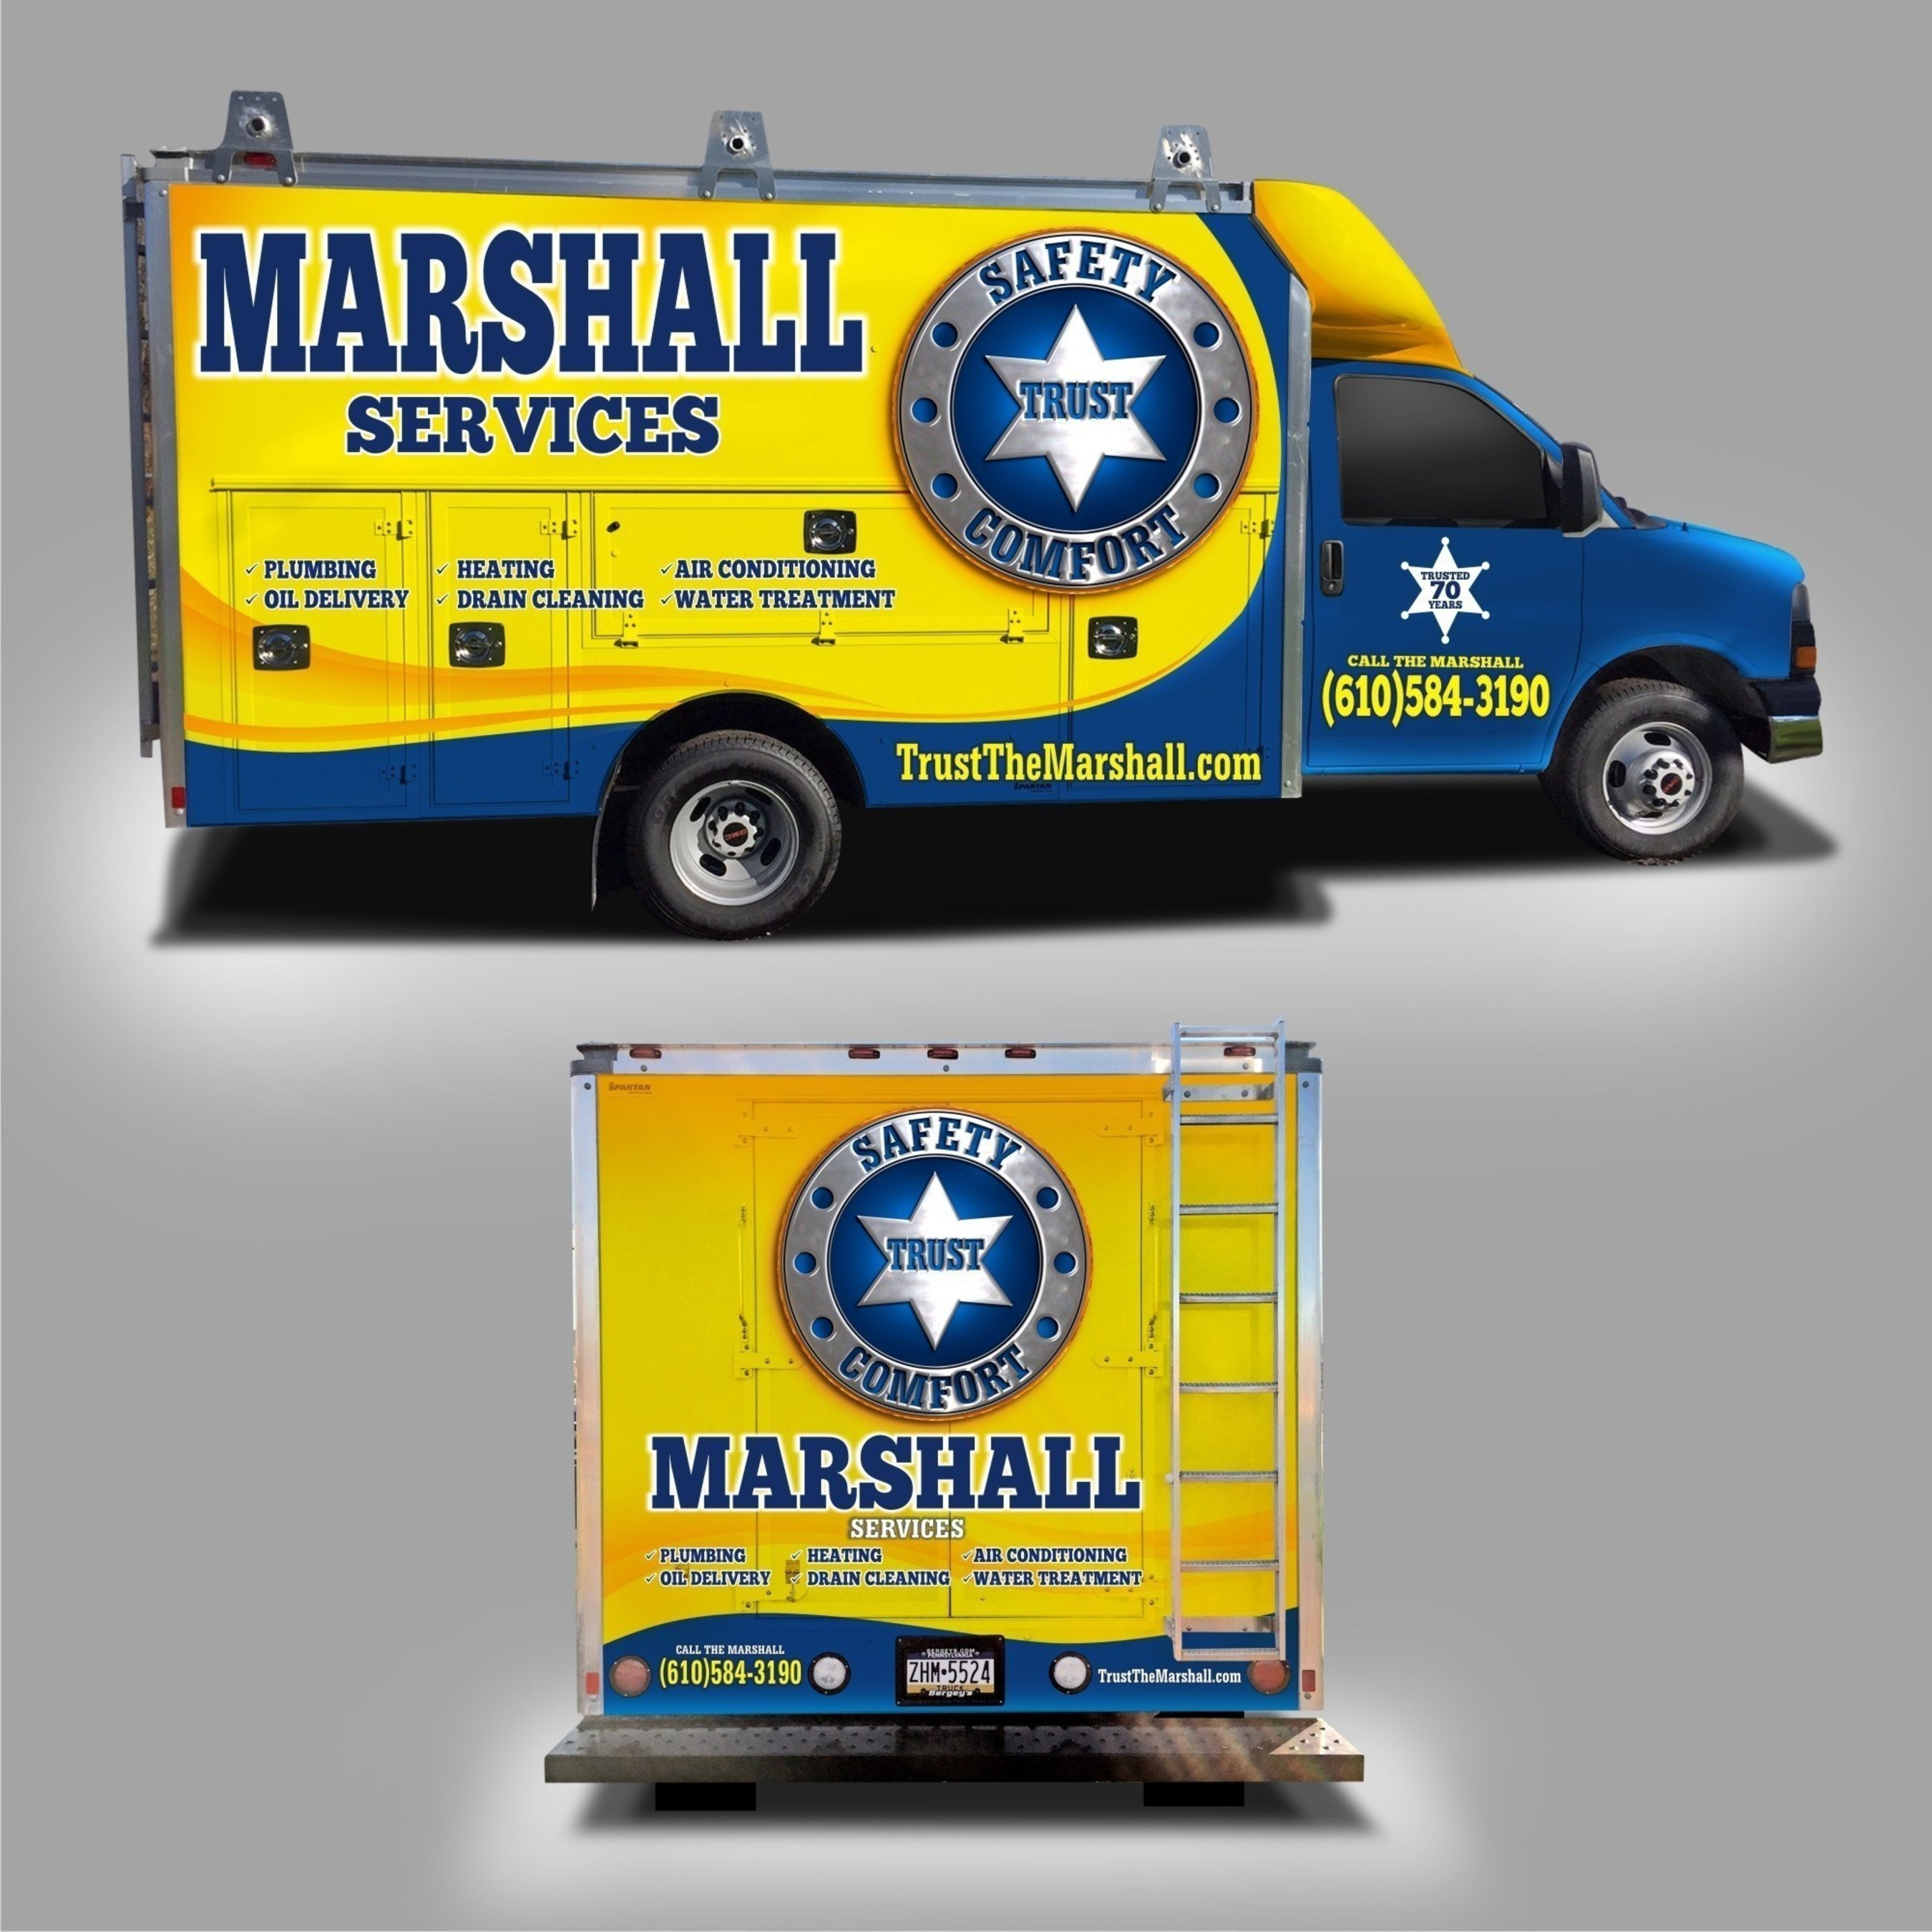 Marshall Home Comfort Changes Name to Marshall Services